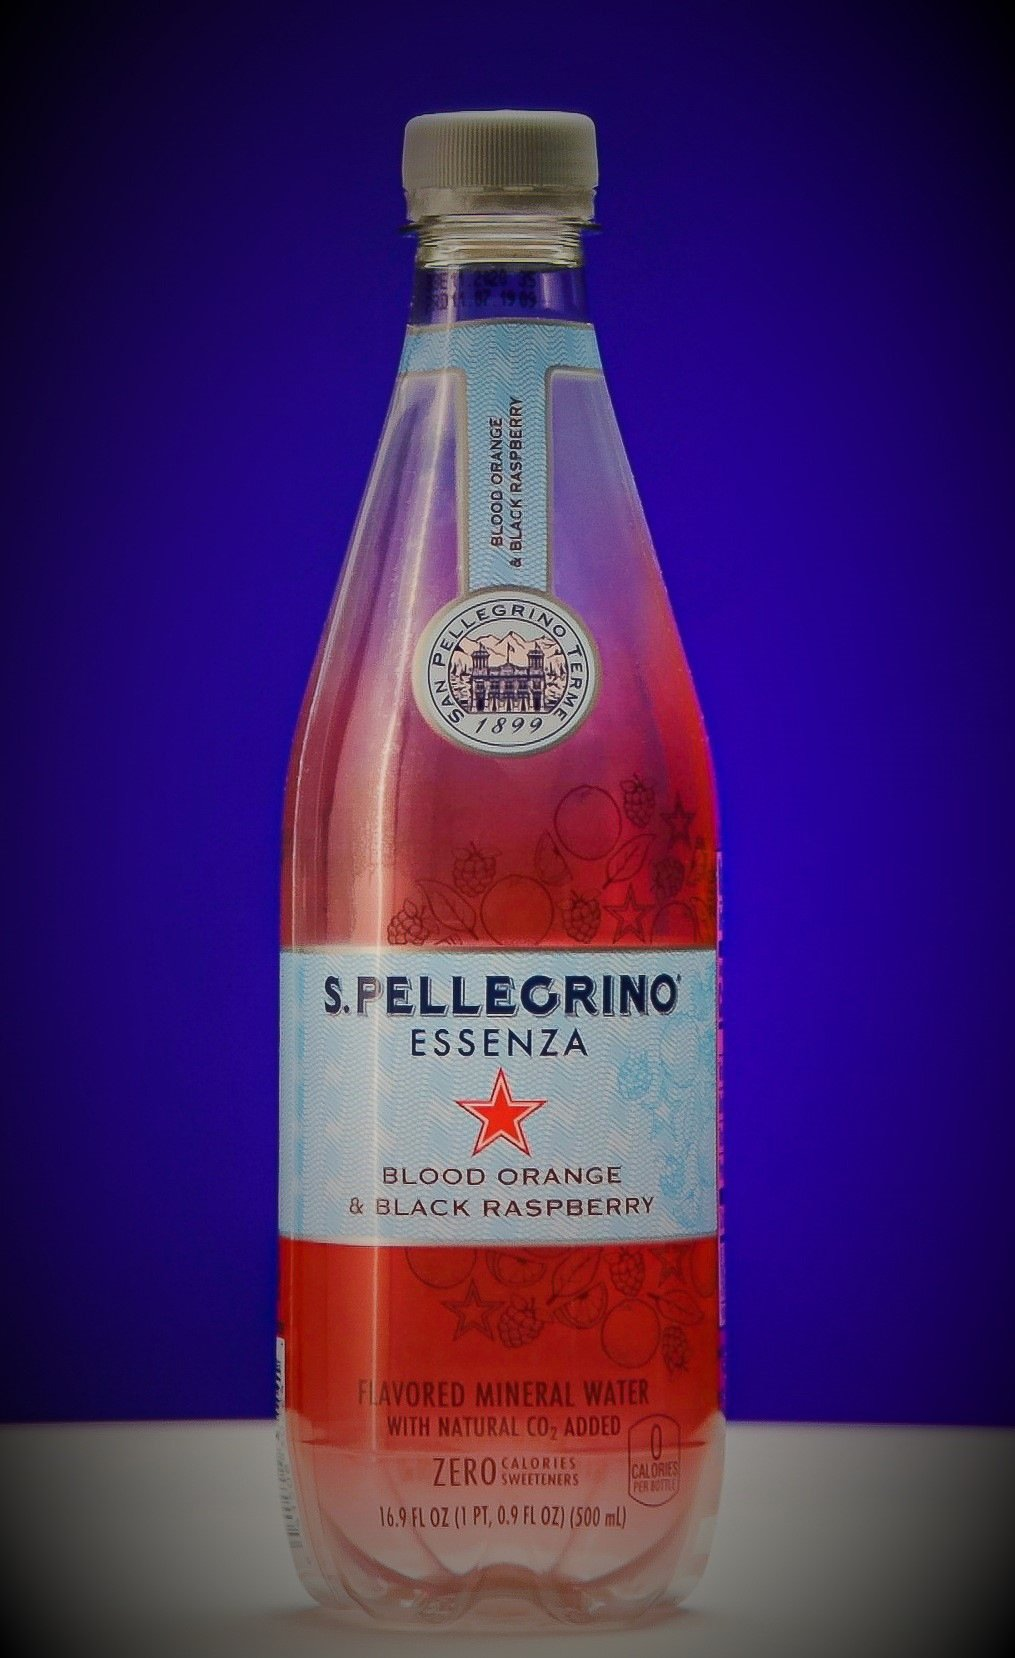 The sleeve label award for an Environmental Contribution to Sustainable Packaging is Sleever International, PET-bottled San Pellegrino Essenza waters.